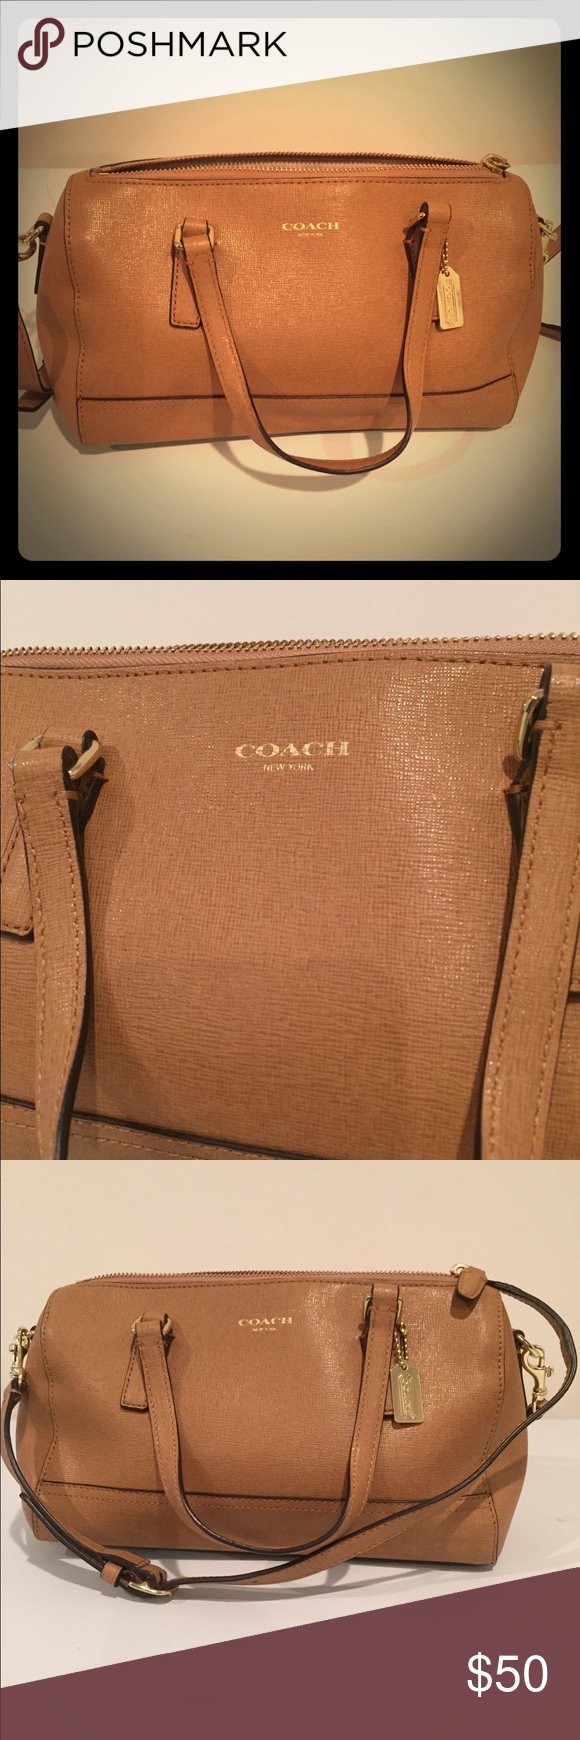 Coach purse Barley used tan Coach purse. Dimensions are approximately 10 in x 6.5 in Coach Bags